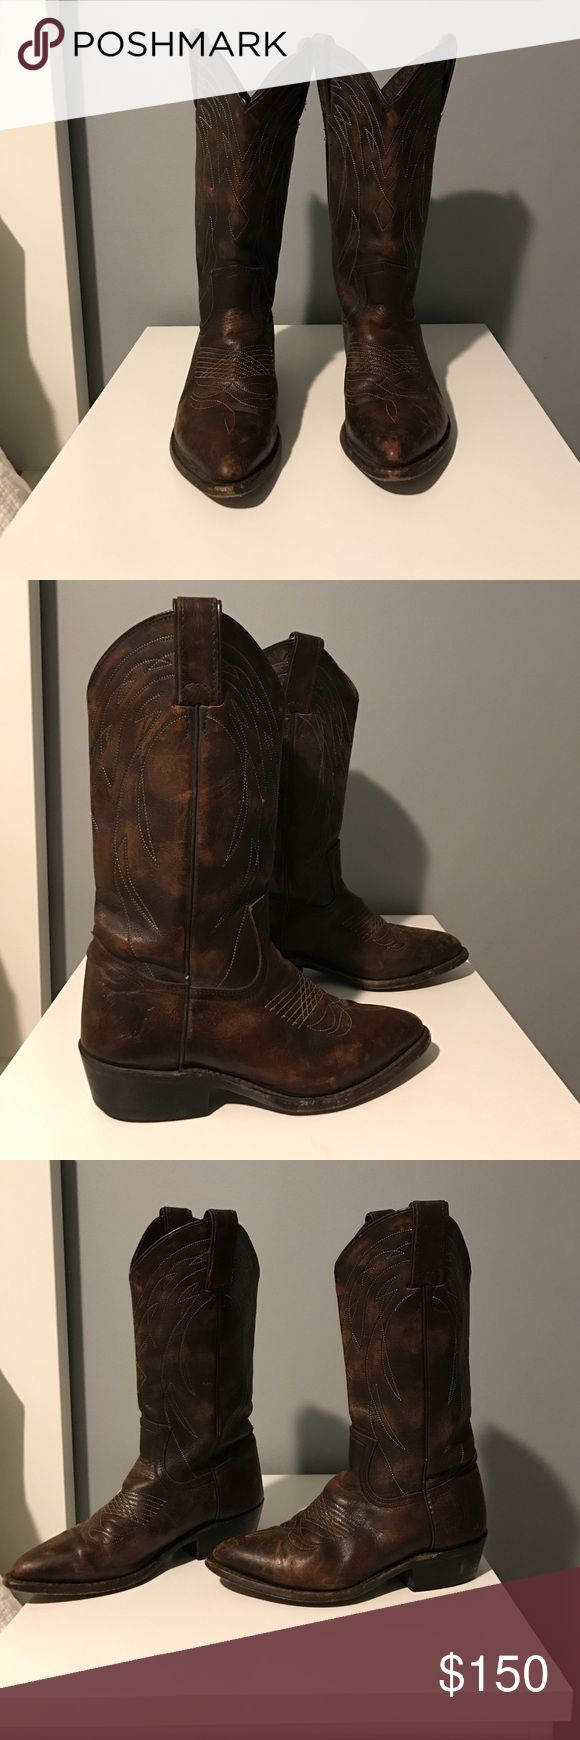 Frye Billy Pull On Boots Genuine Frye Billy Pull on cowboy boots. Love these but they don't fit anymore. Worn approximately 10 times so they still have a lot of wear left! Frye Shoes Heeled Boots